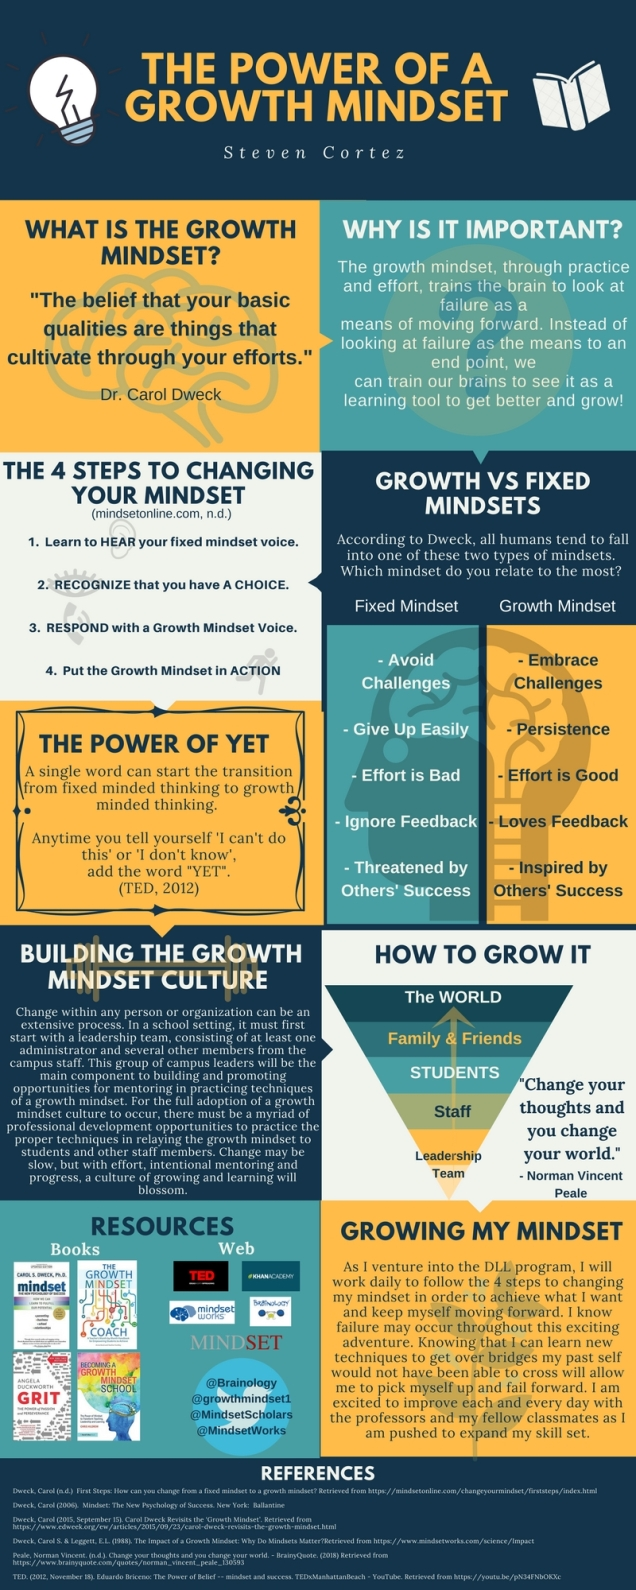 The Power of a Growth Mindset Infographic